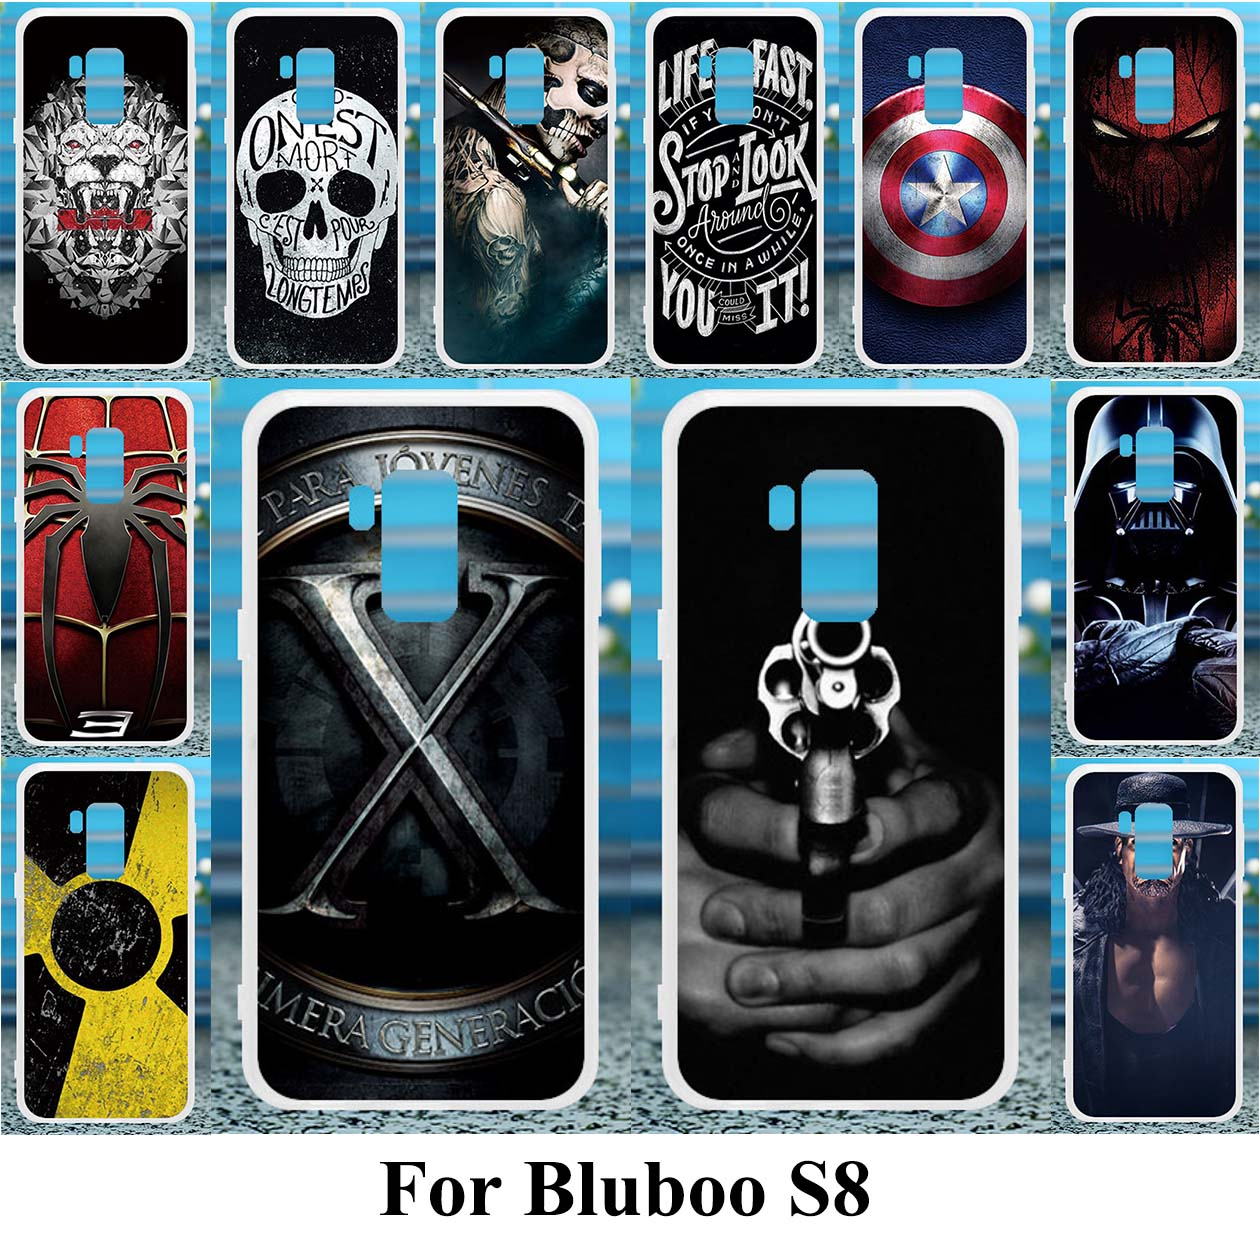 competitive price 92a0f e1f32 US $0.88 30% OFF|TPU Soft TPU Cases For Bluboo S8 5.7 inch Case Skin Back  Capa Cover For Bluboo S8 5.7 inch Case Silicone DIV Painted Fundas-in  Fitted ...